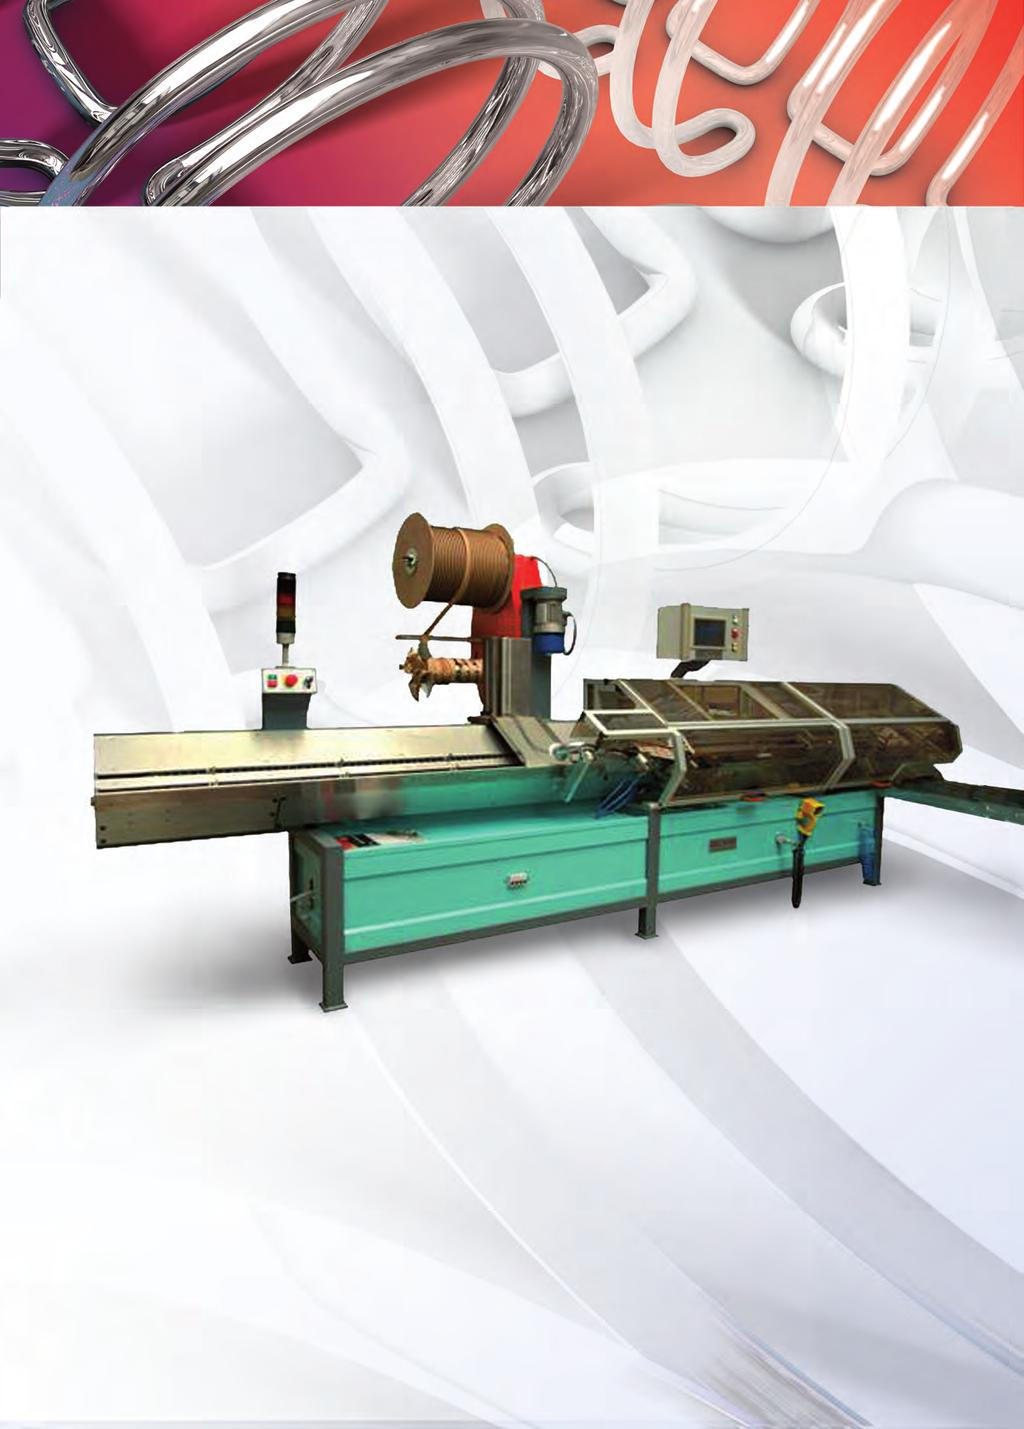 B-535 T.S. Fully utomtic bookbinding mchine The new Rilecrt smll utomtic bookbinding mchine. Reduced size, reduced price, incresed productivity nd speed.